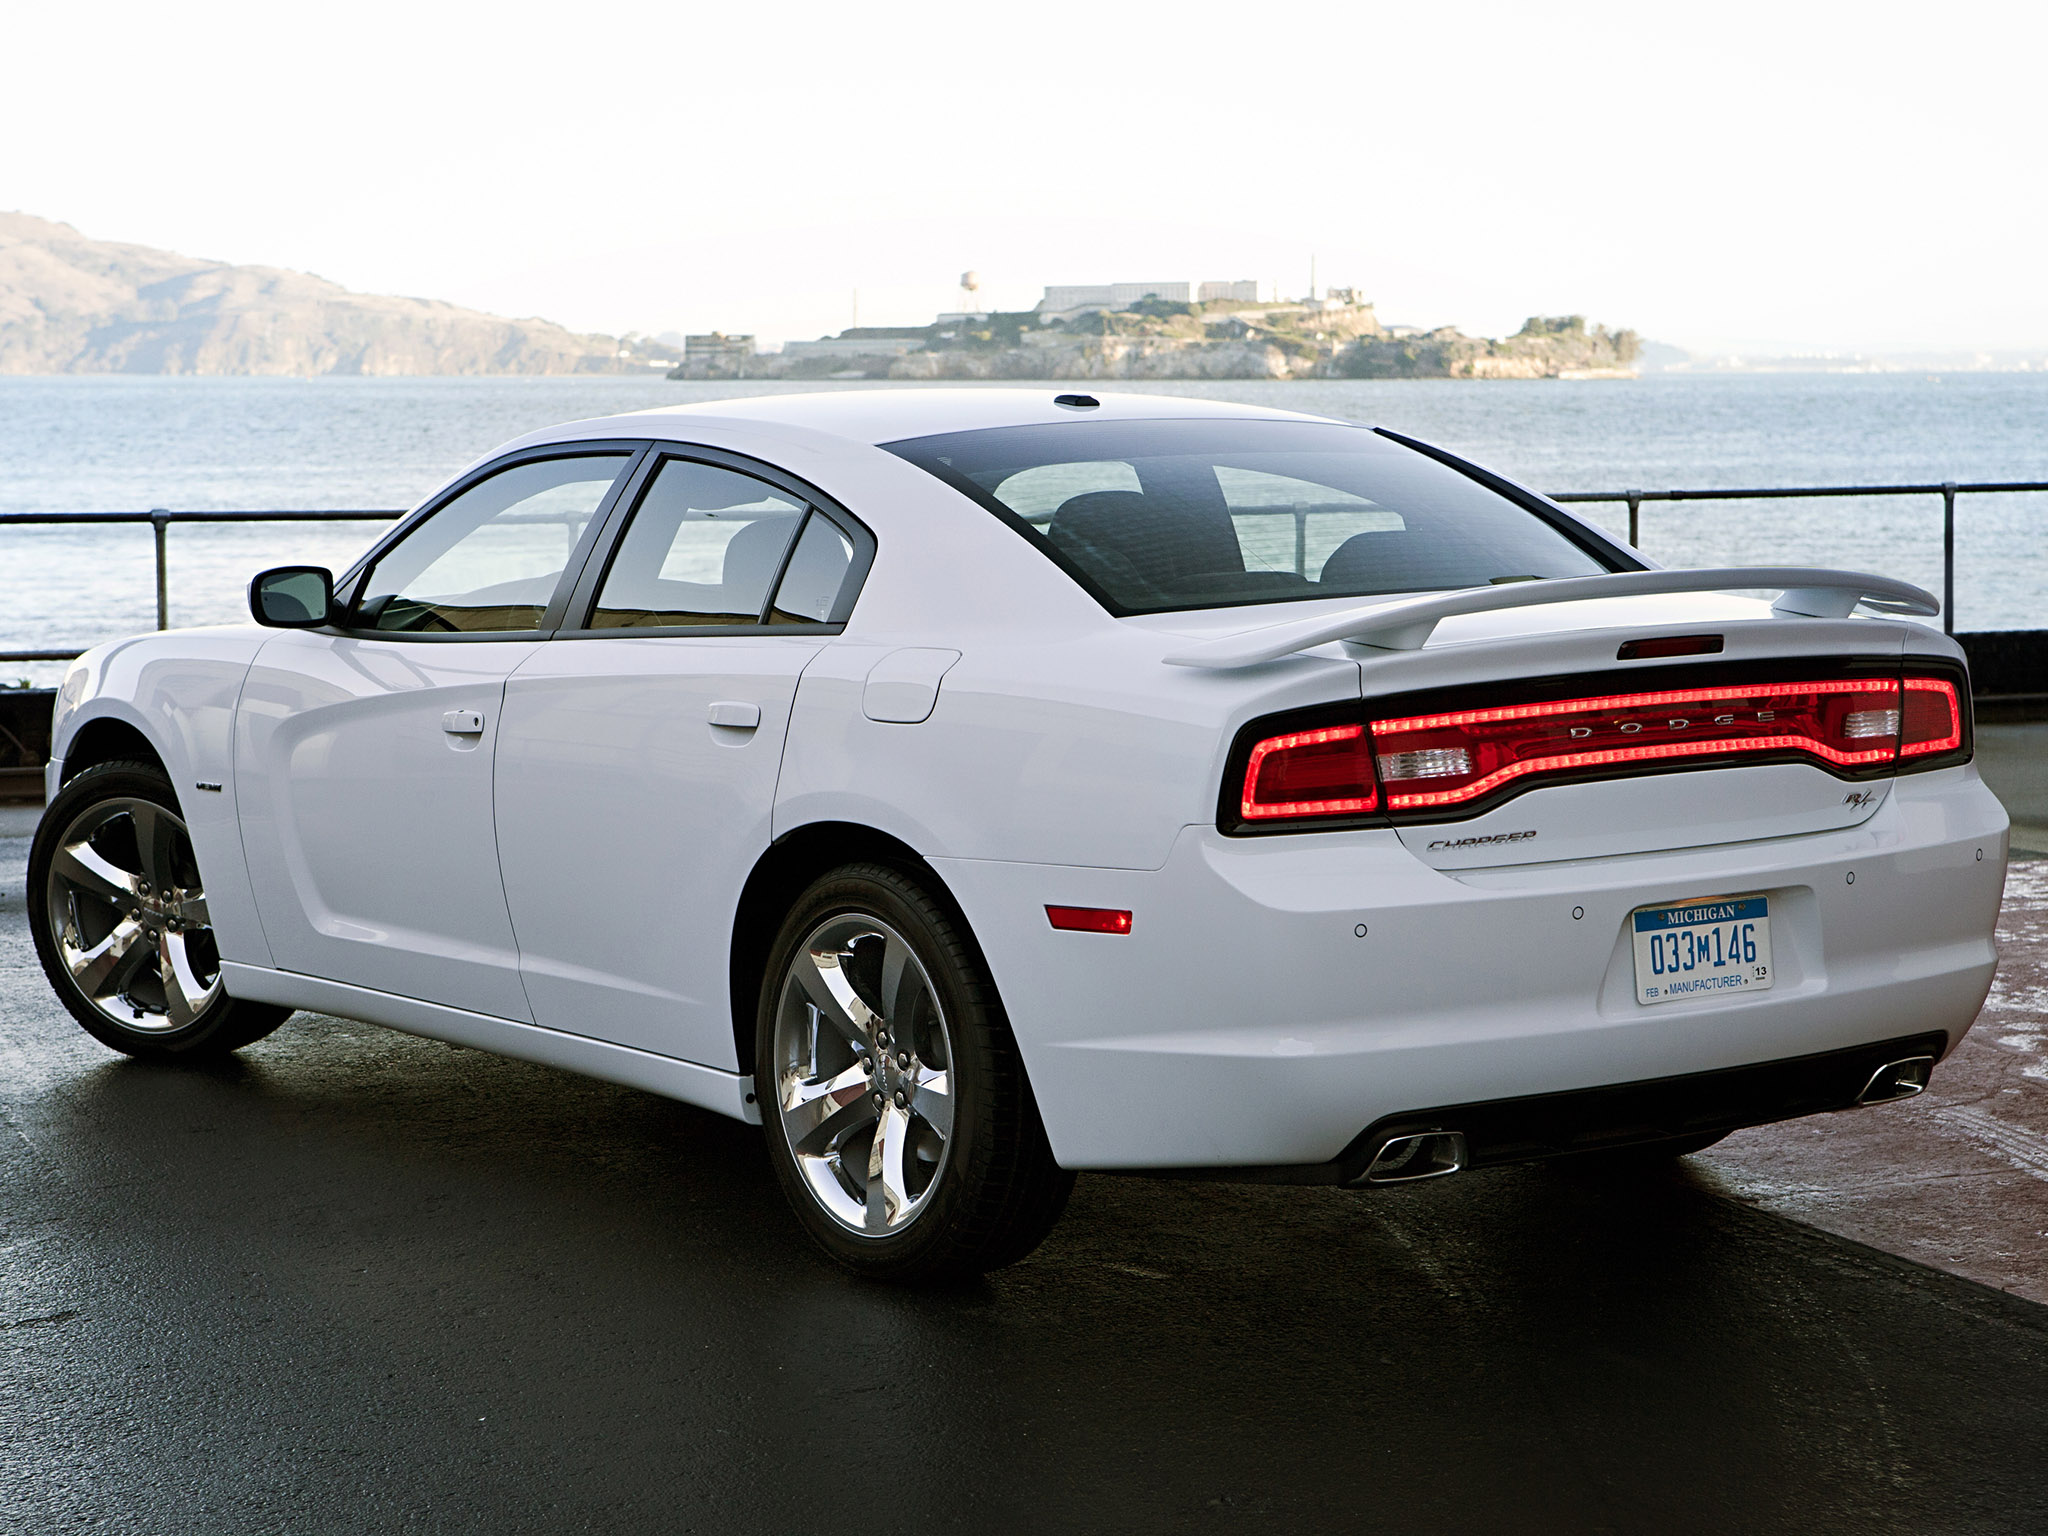 dodge charger rt 2010 dodge charger rt 2010 photo 07 car in pictures car photo gallery. Black Bedroom Furniture Sets. Home Design Ideas